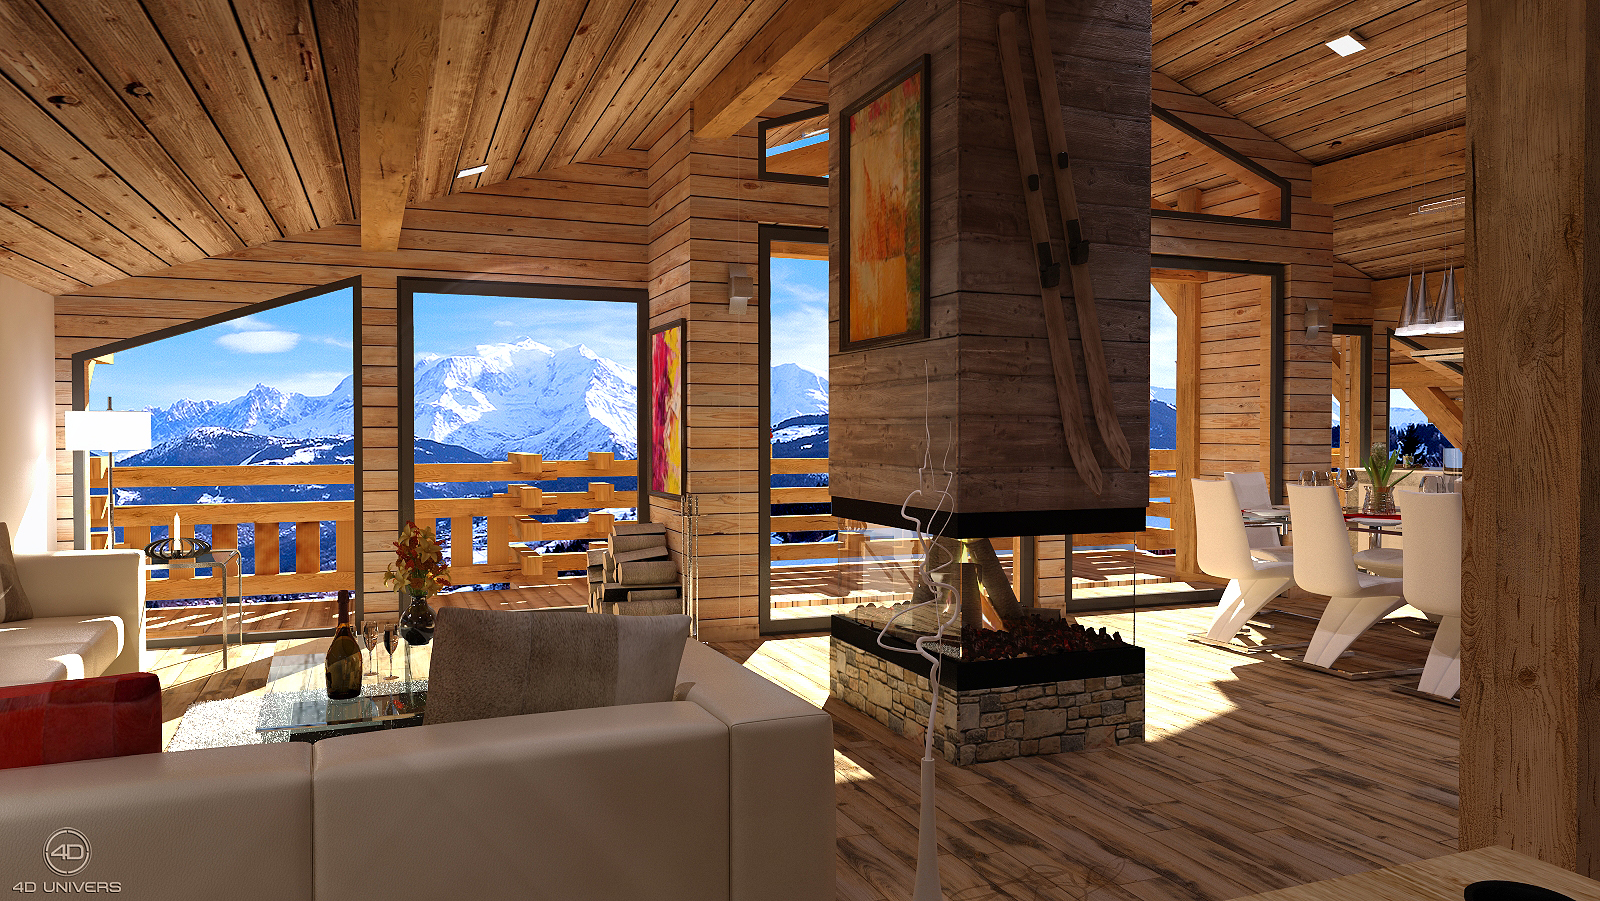 Realisations 3d 4d univers studio animation 3d architecture 3d visites virtuelles 360 for Interieur de chalet